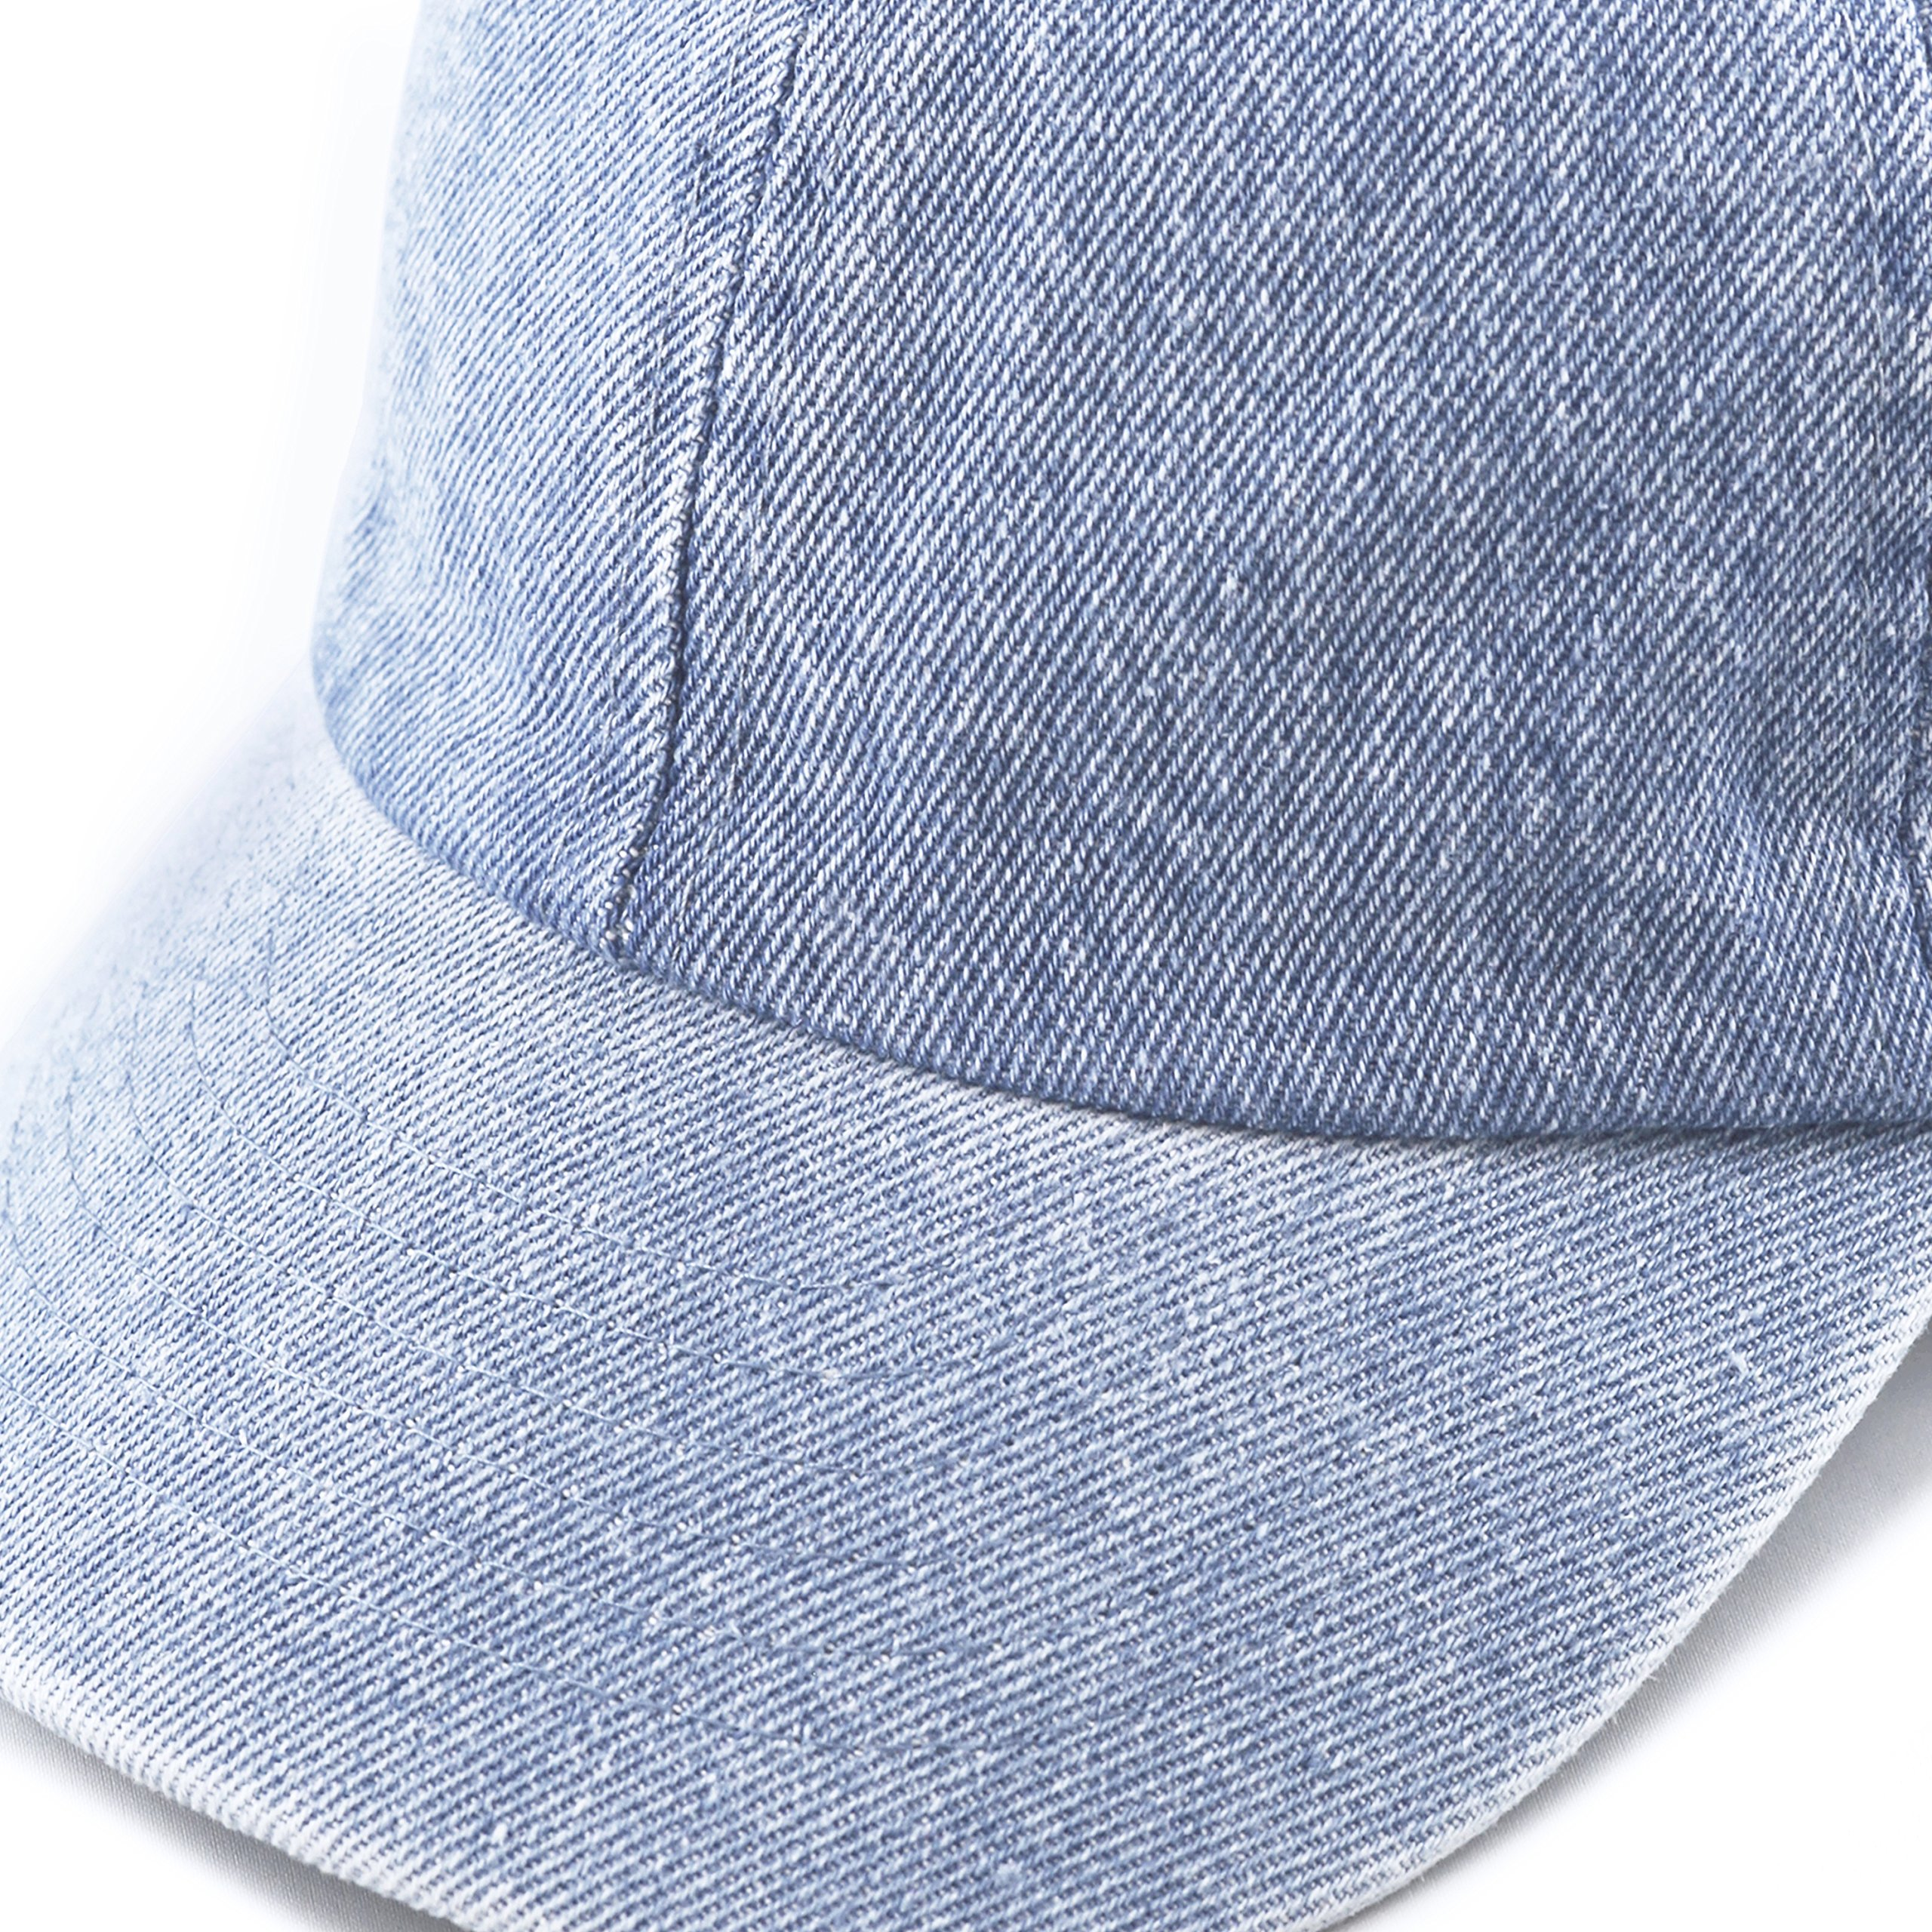 THE HAT DEPOT Kids Washed Low Profile Cotton and Denim Baseball Cap (Light Denim) by THE HAT DEPOT (Image #3)